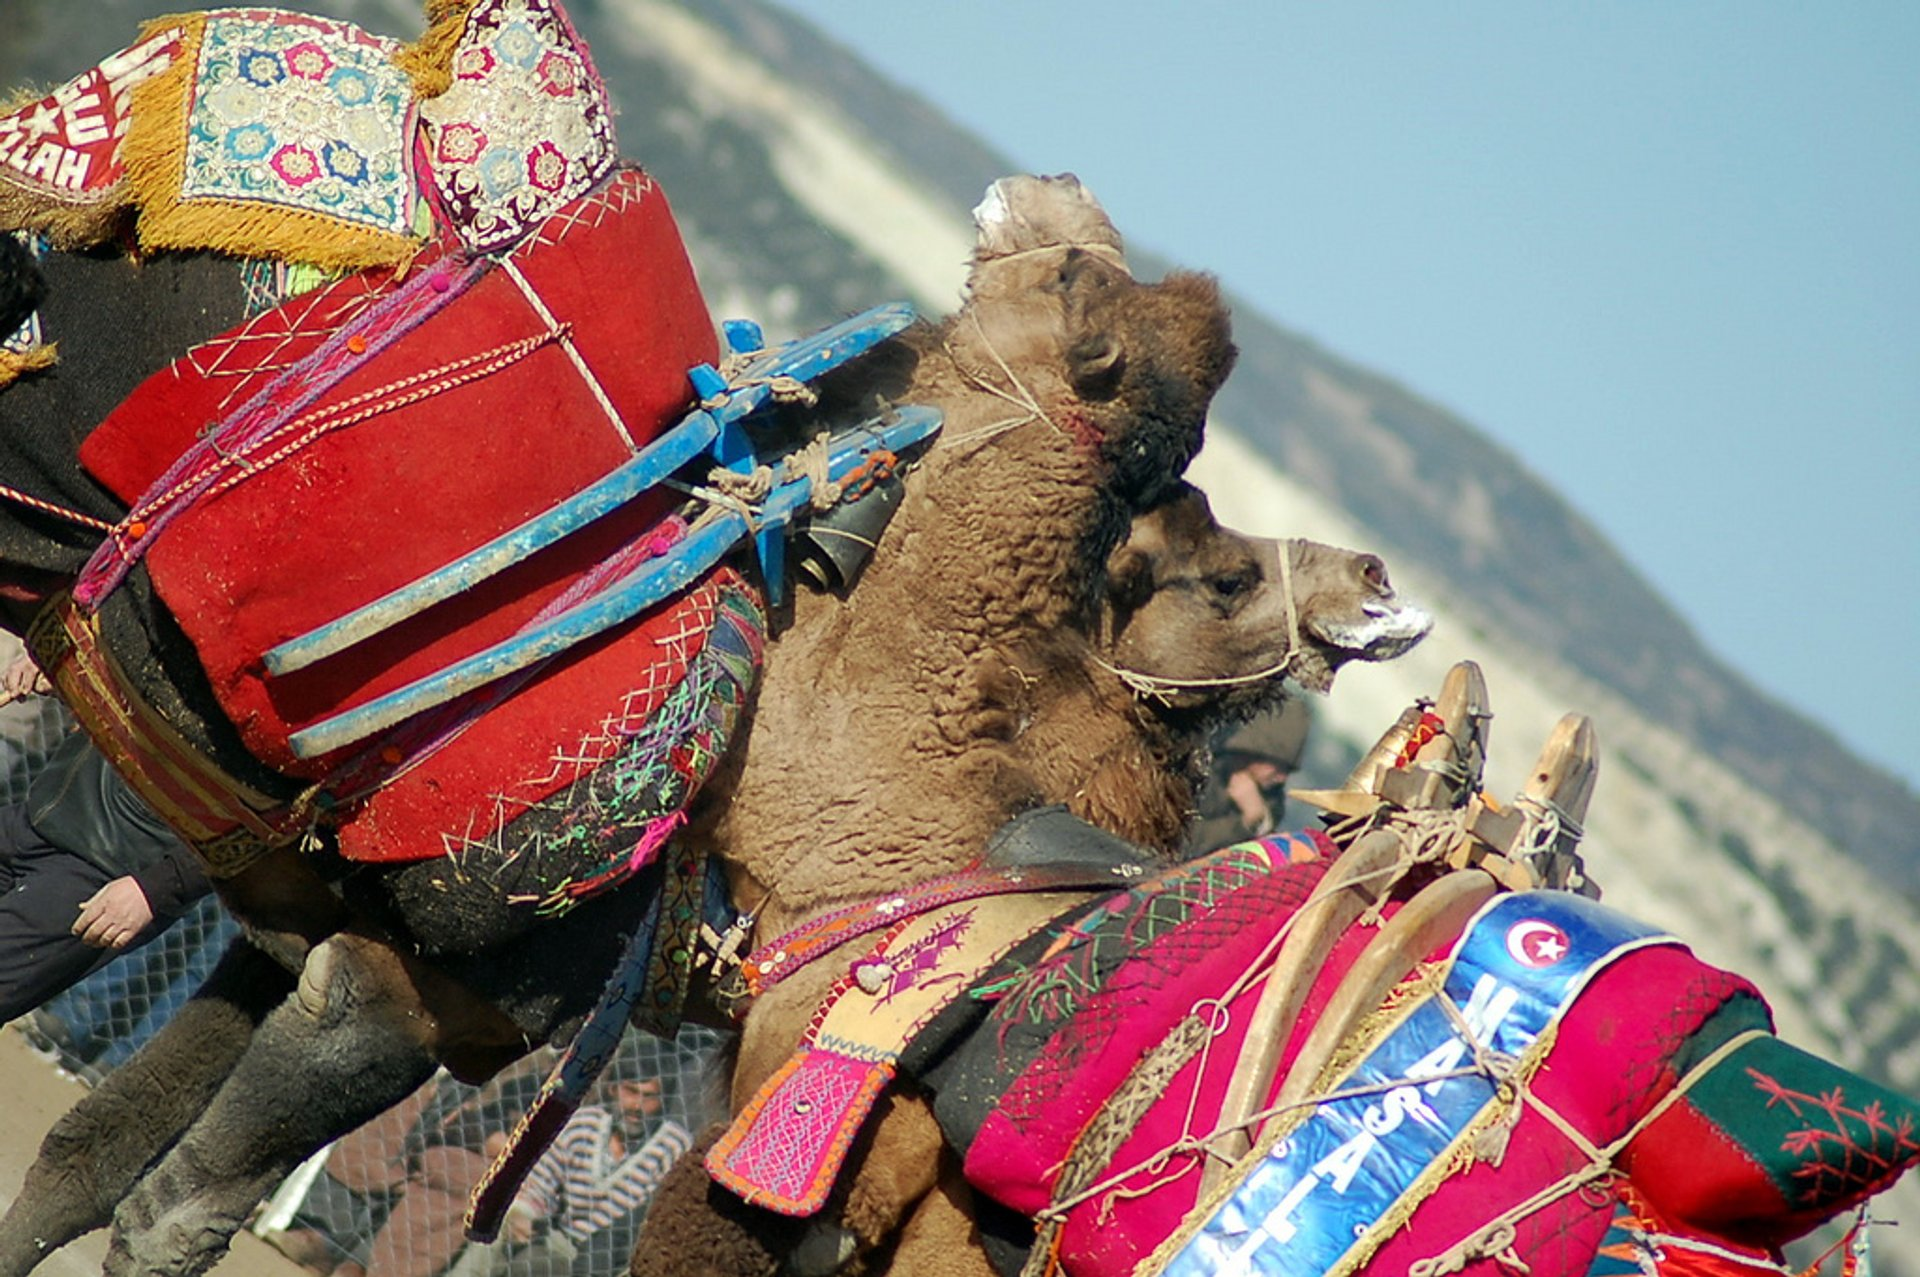 Camels lock necks and then push and pull until one loses balance and falls down